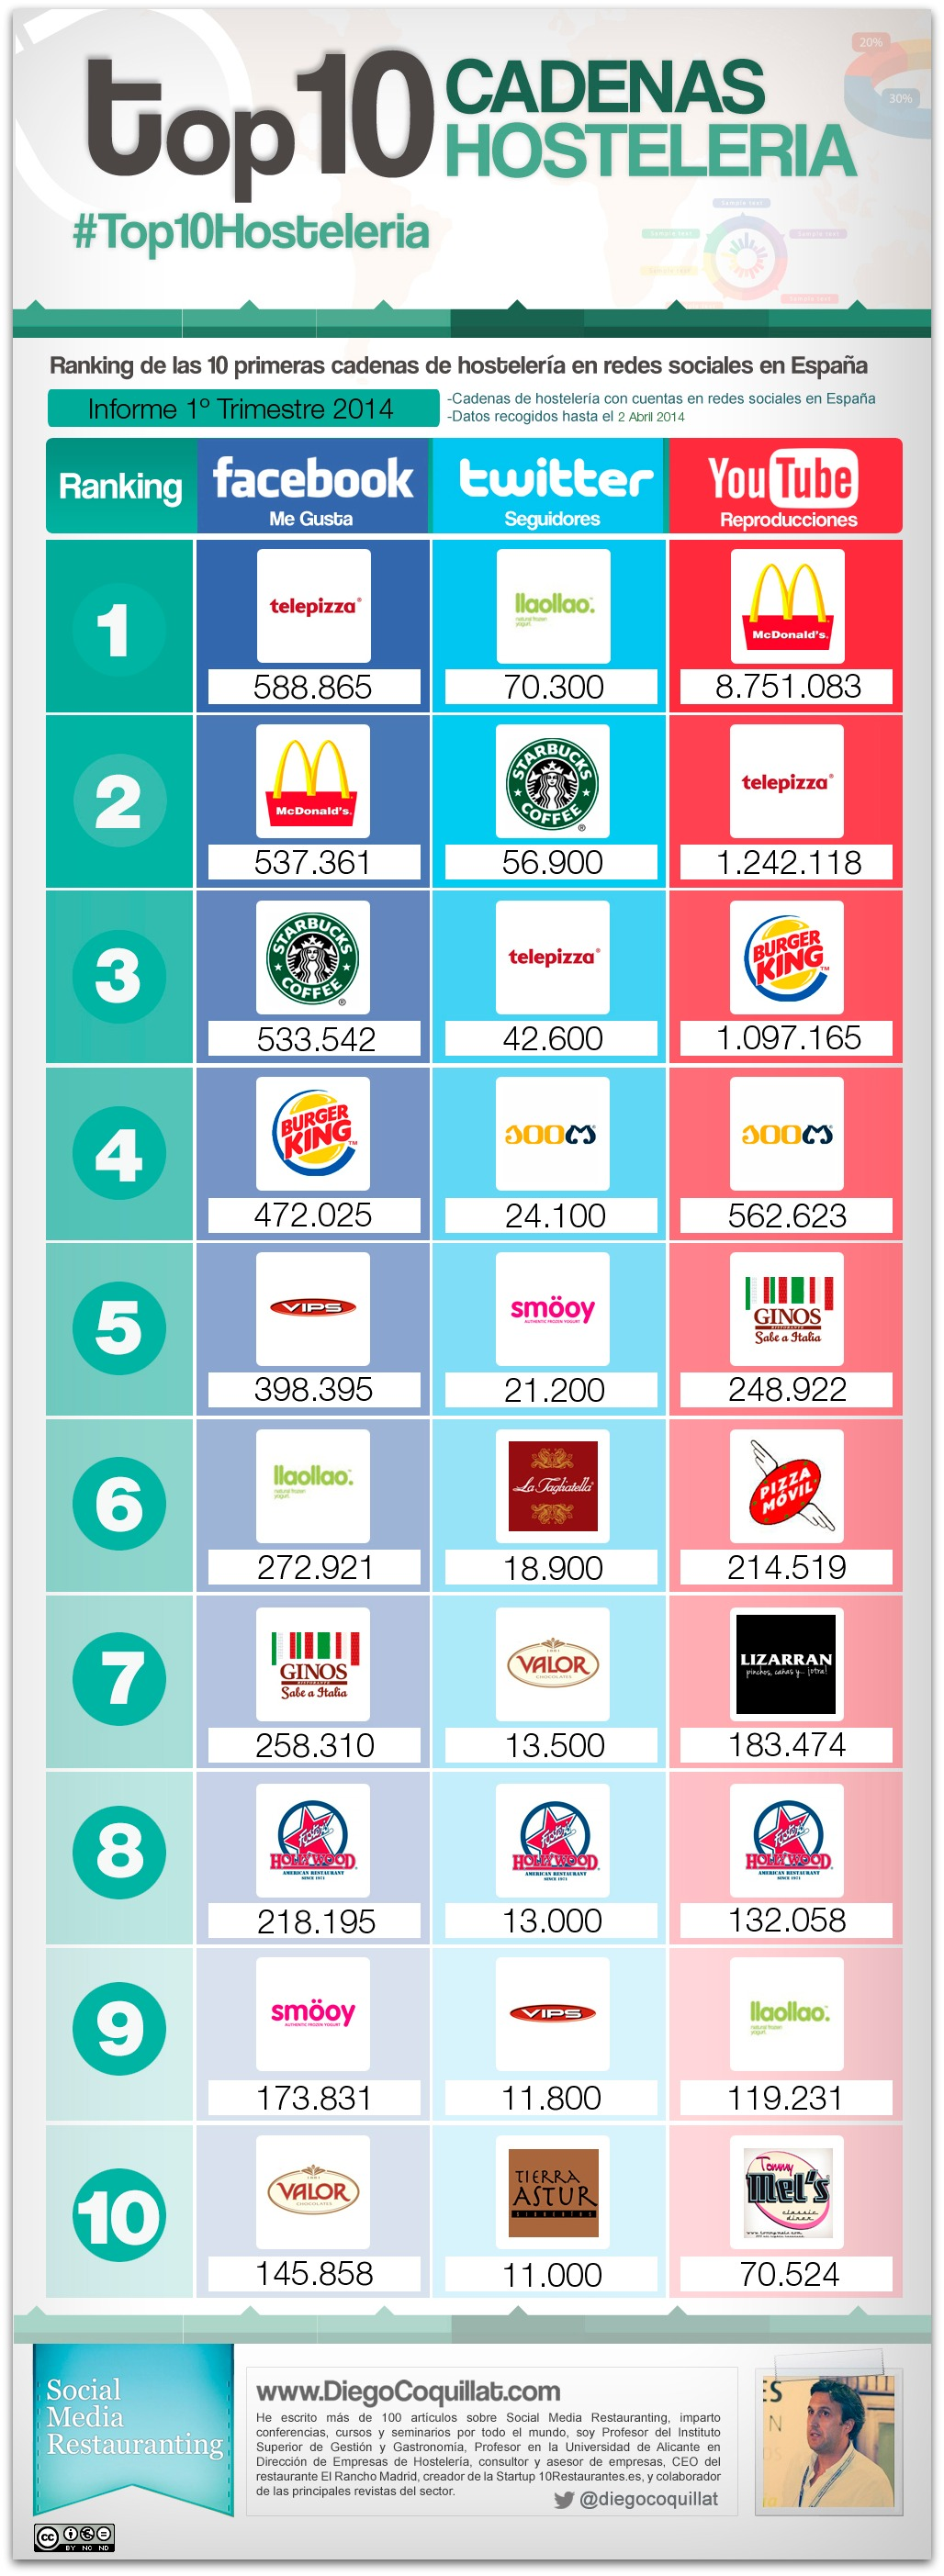 Best hospitality chains in social networks